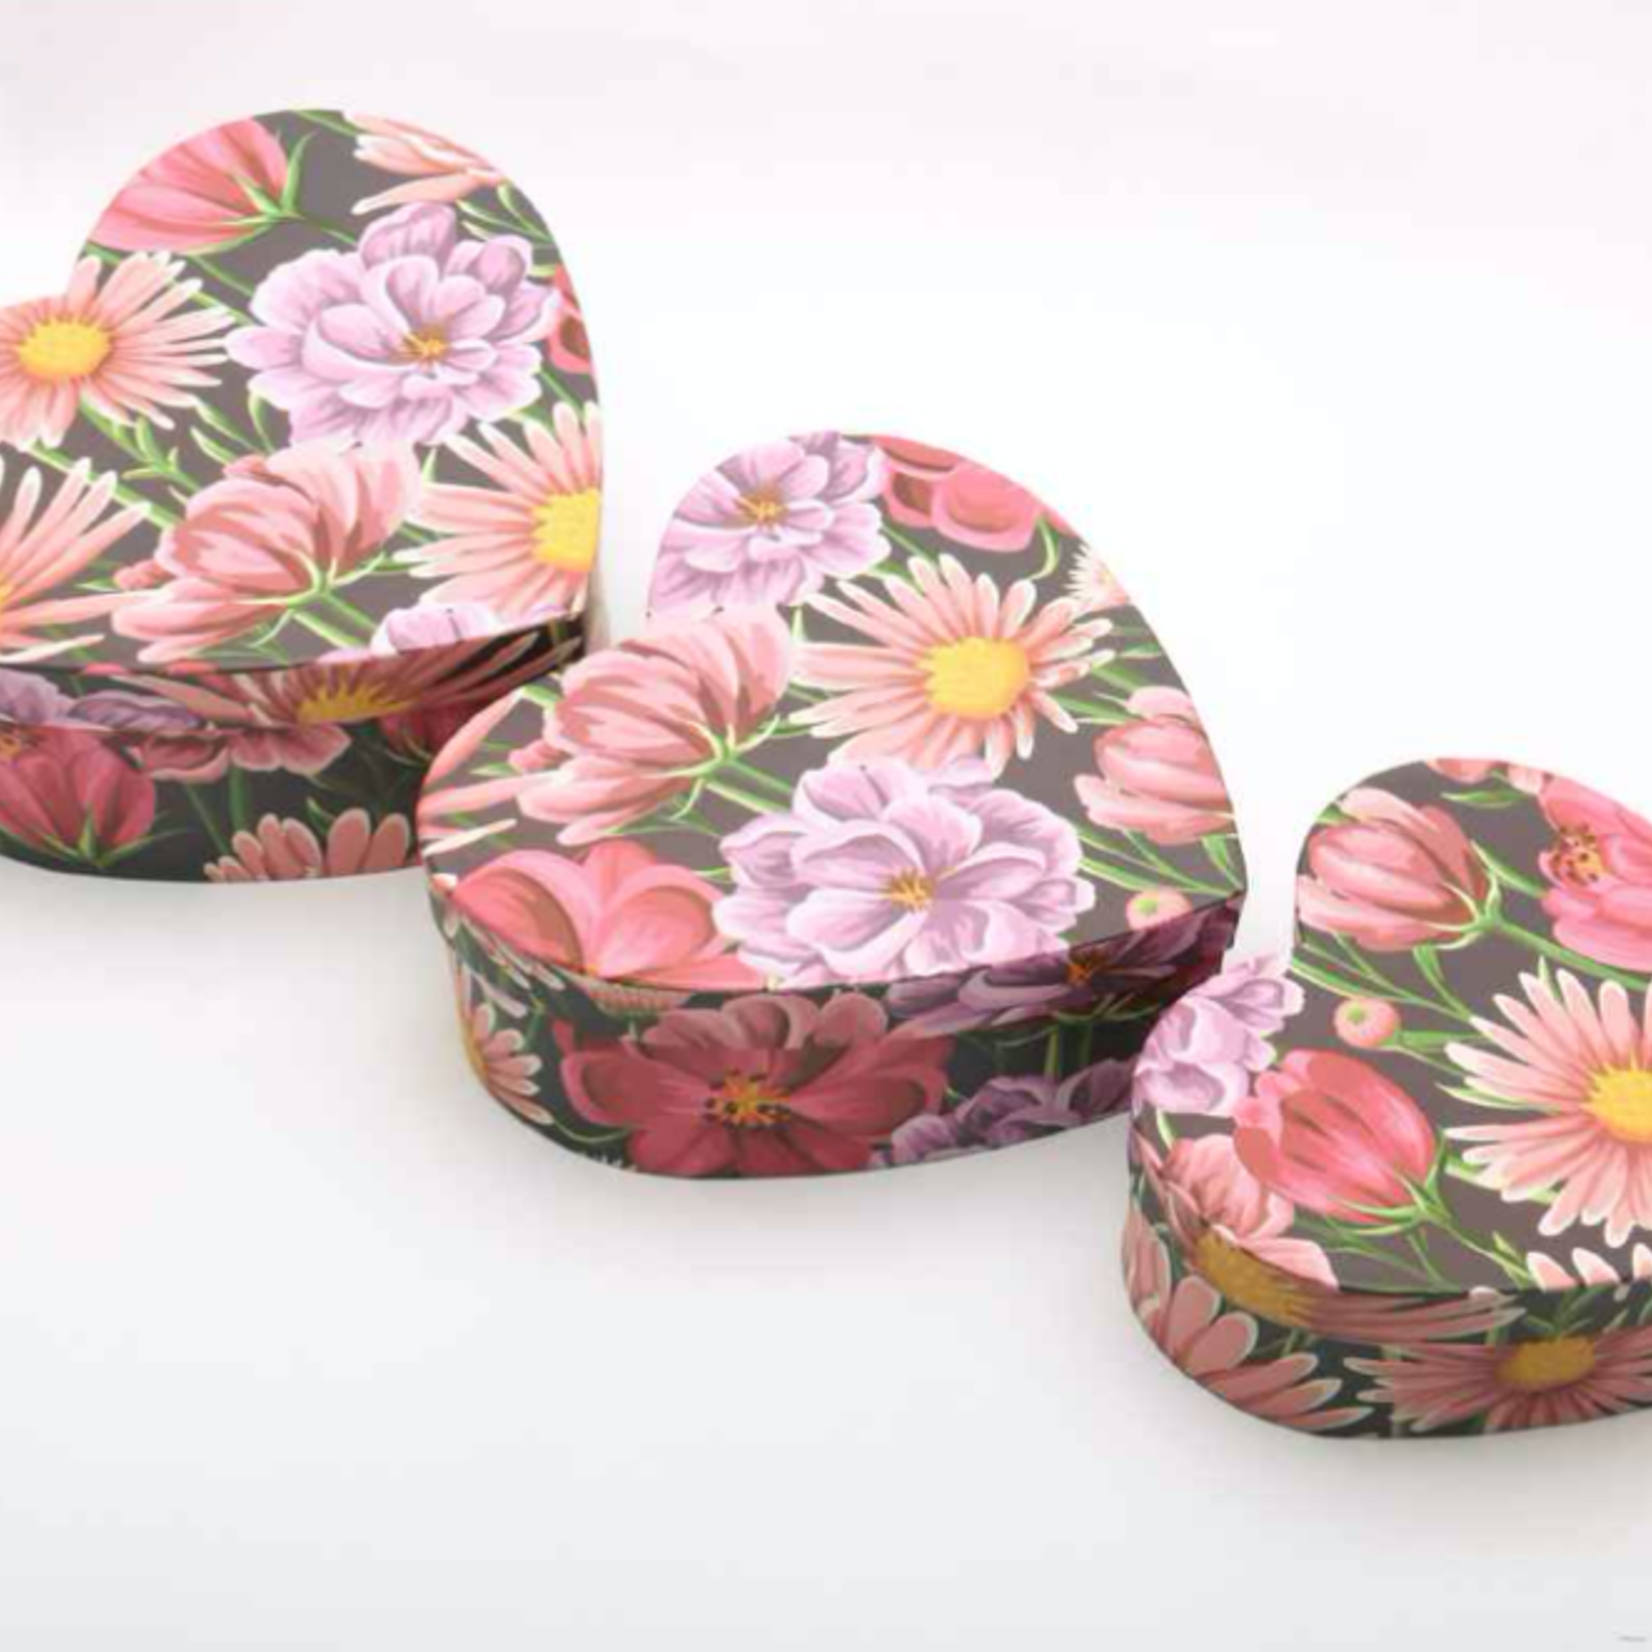 3 PIECE HEART BOX  only sold by the set